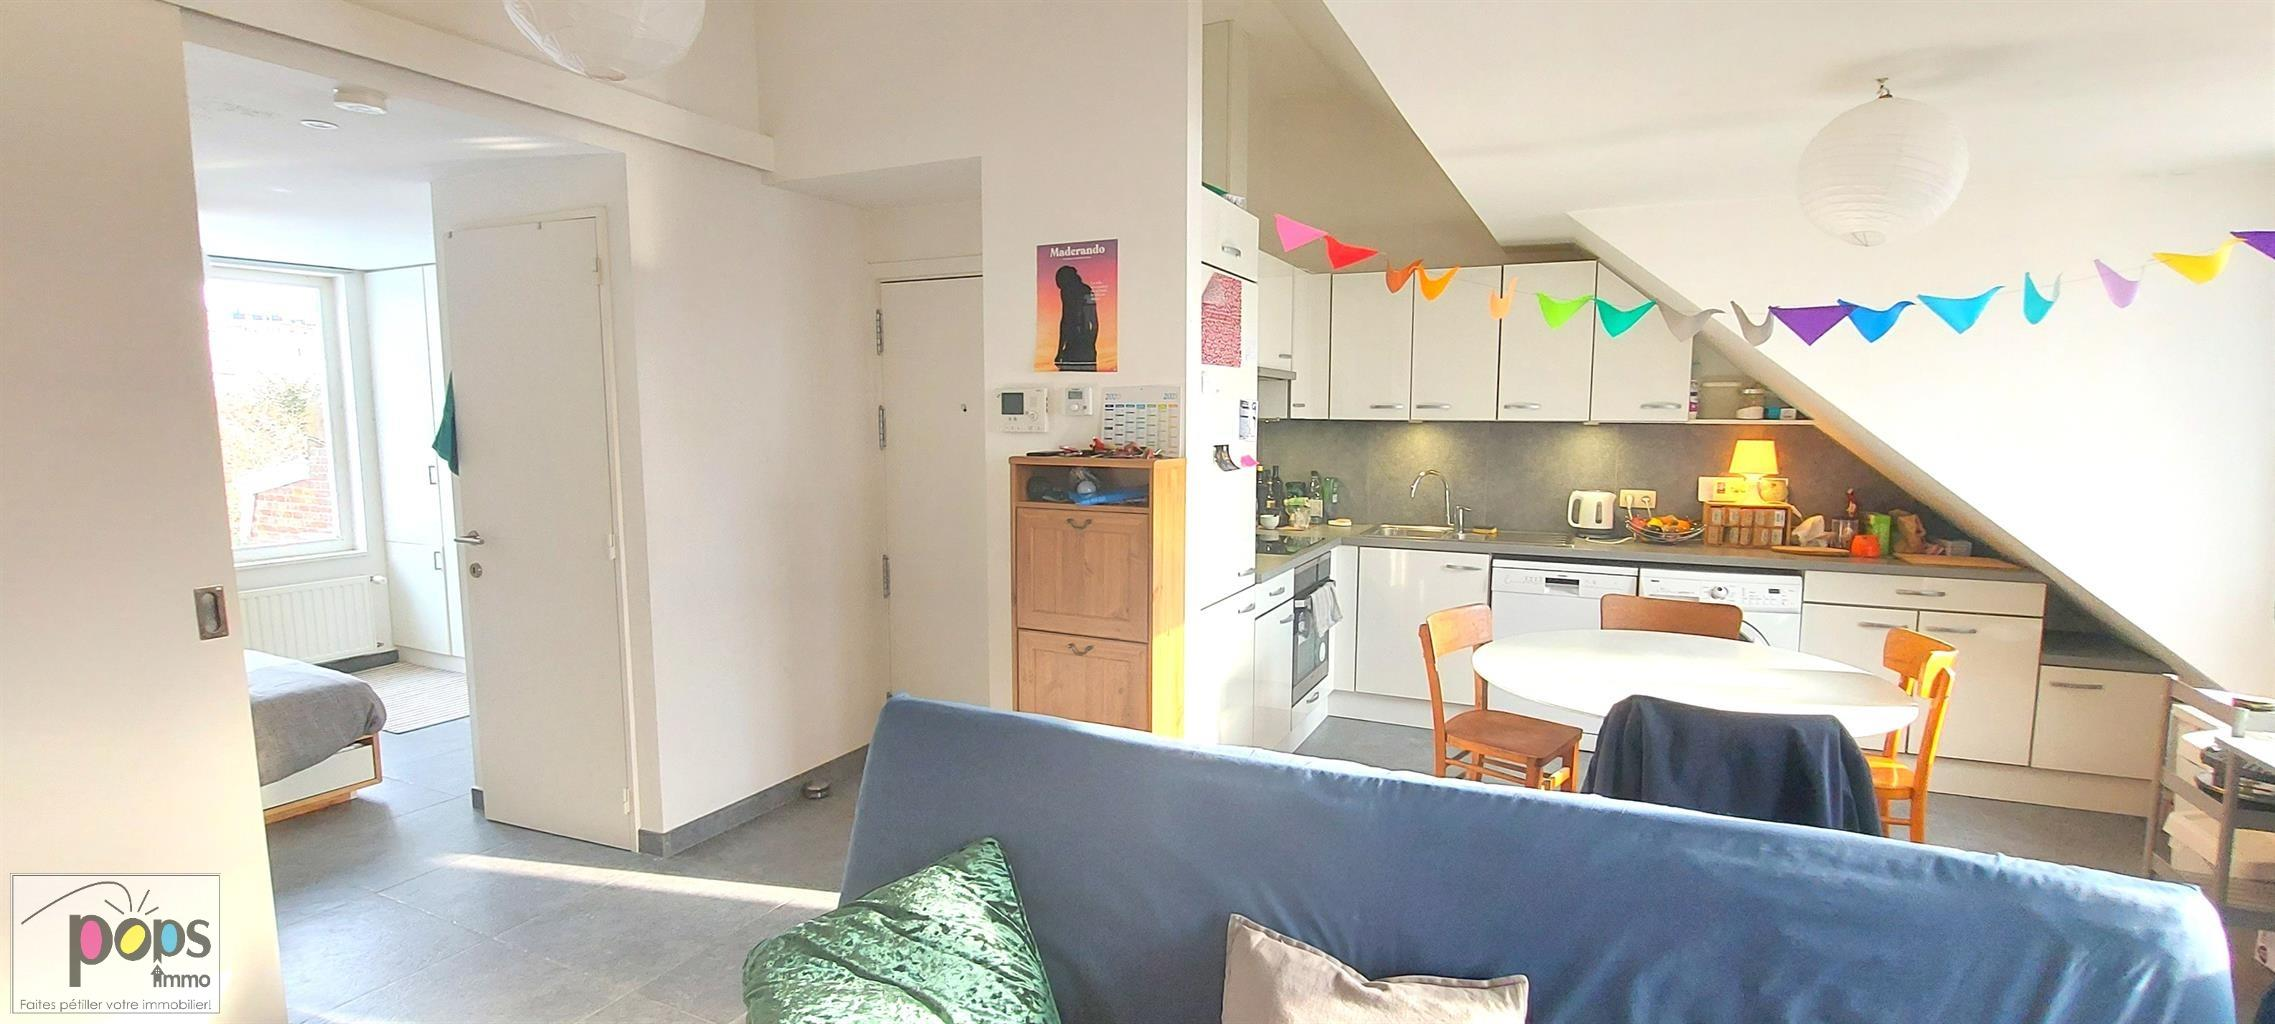 Appartement - Uccle - #4294712-2